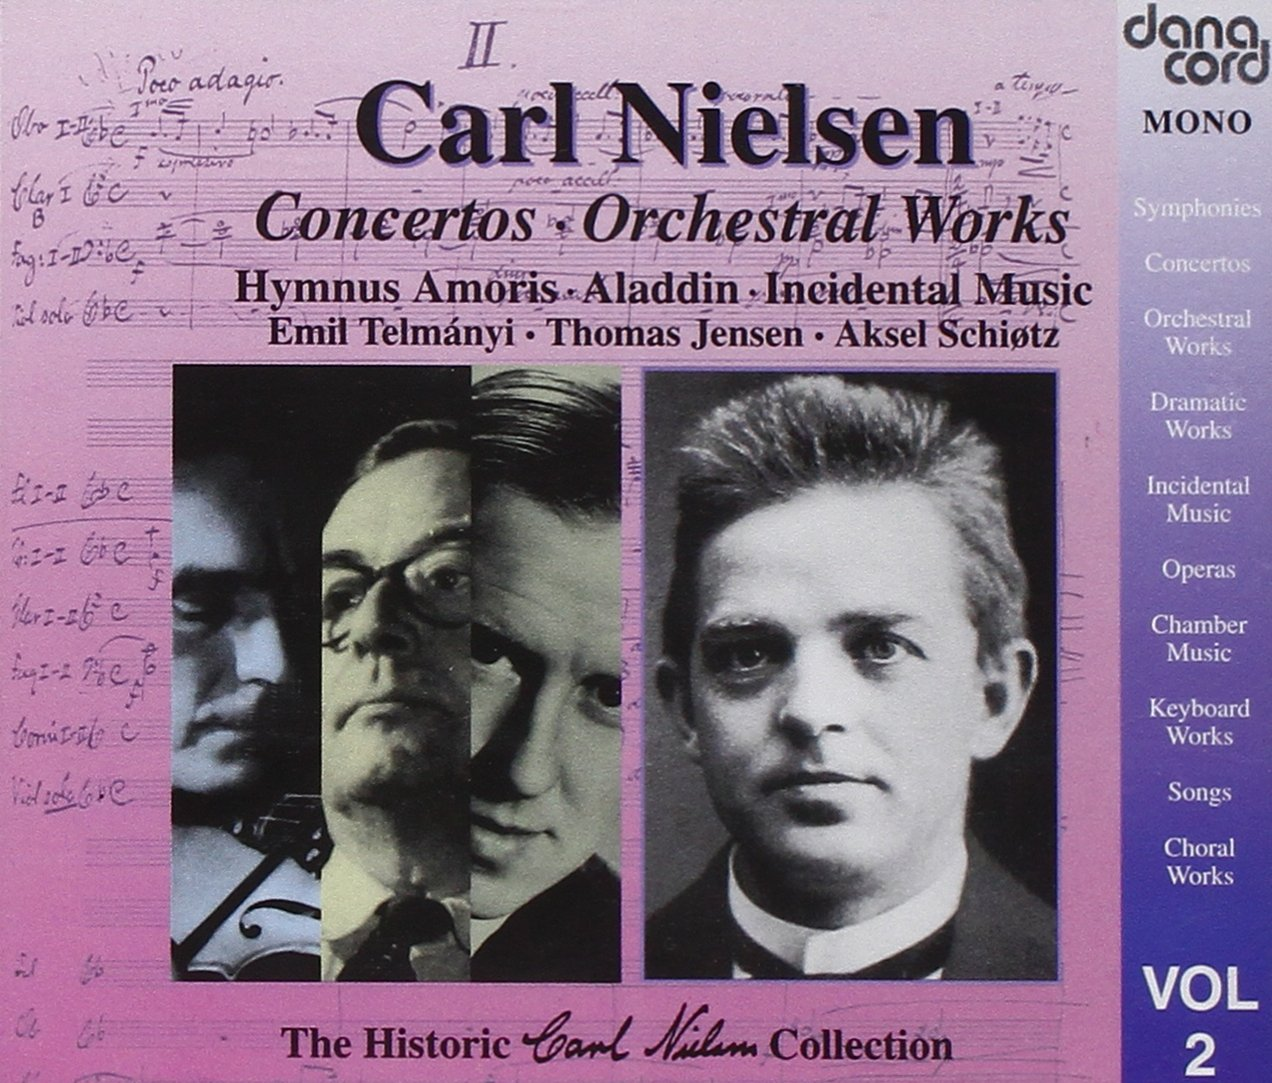 The Historic Carl Nielsen Collection, Vol. 2: Concertos / Orchestral Works by Danacord